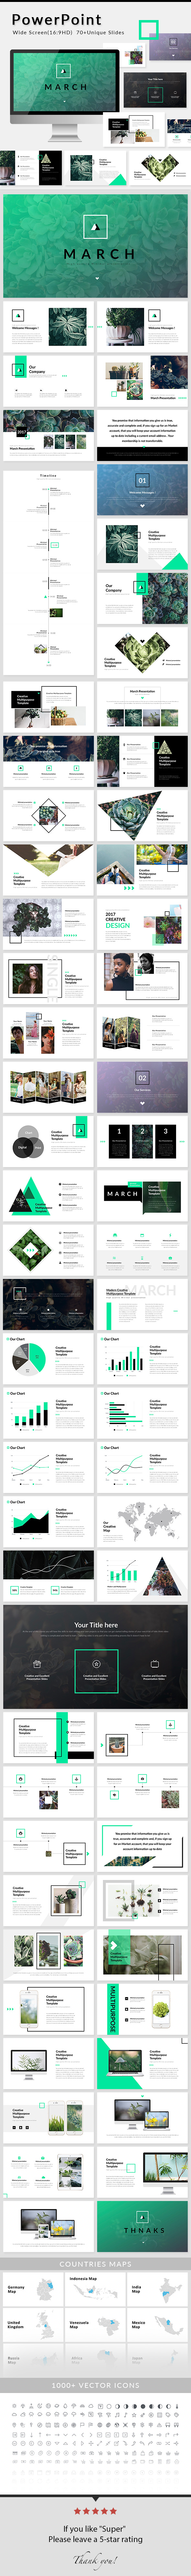 March - PowerPoint Presentation Template - Creative PowerPoint Templates